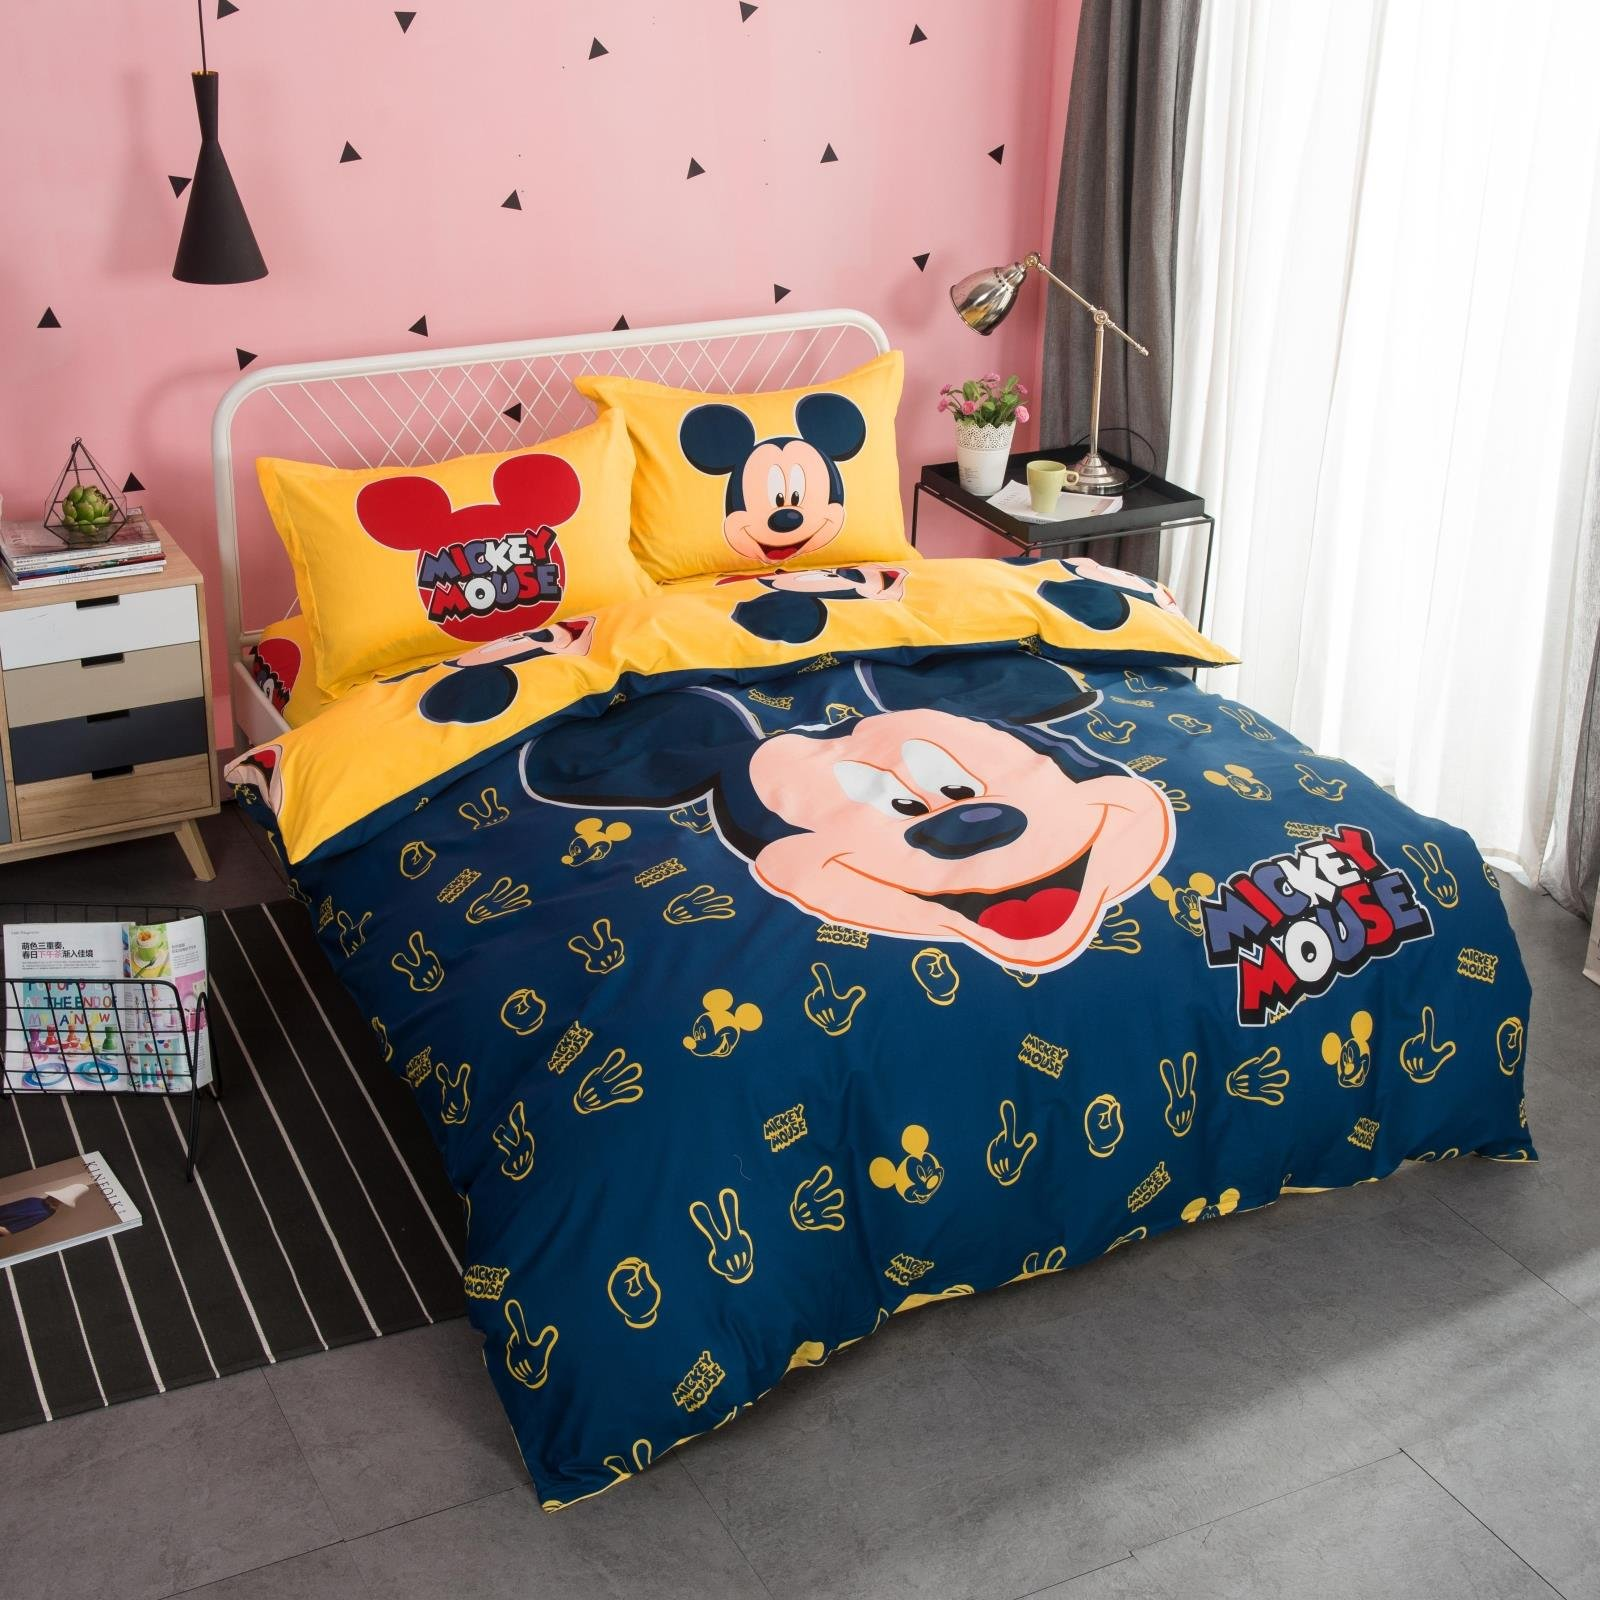 CASA 100% Cotton Kids Bedding Set Boys Mickey Series Mickey Duvet cover and Pillow cases and Flat sheet,4 Pieces,King